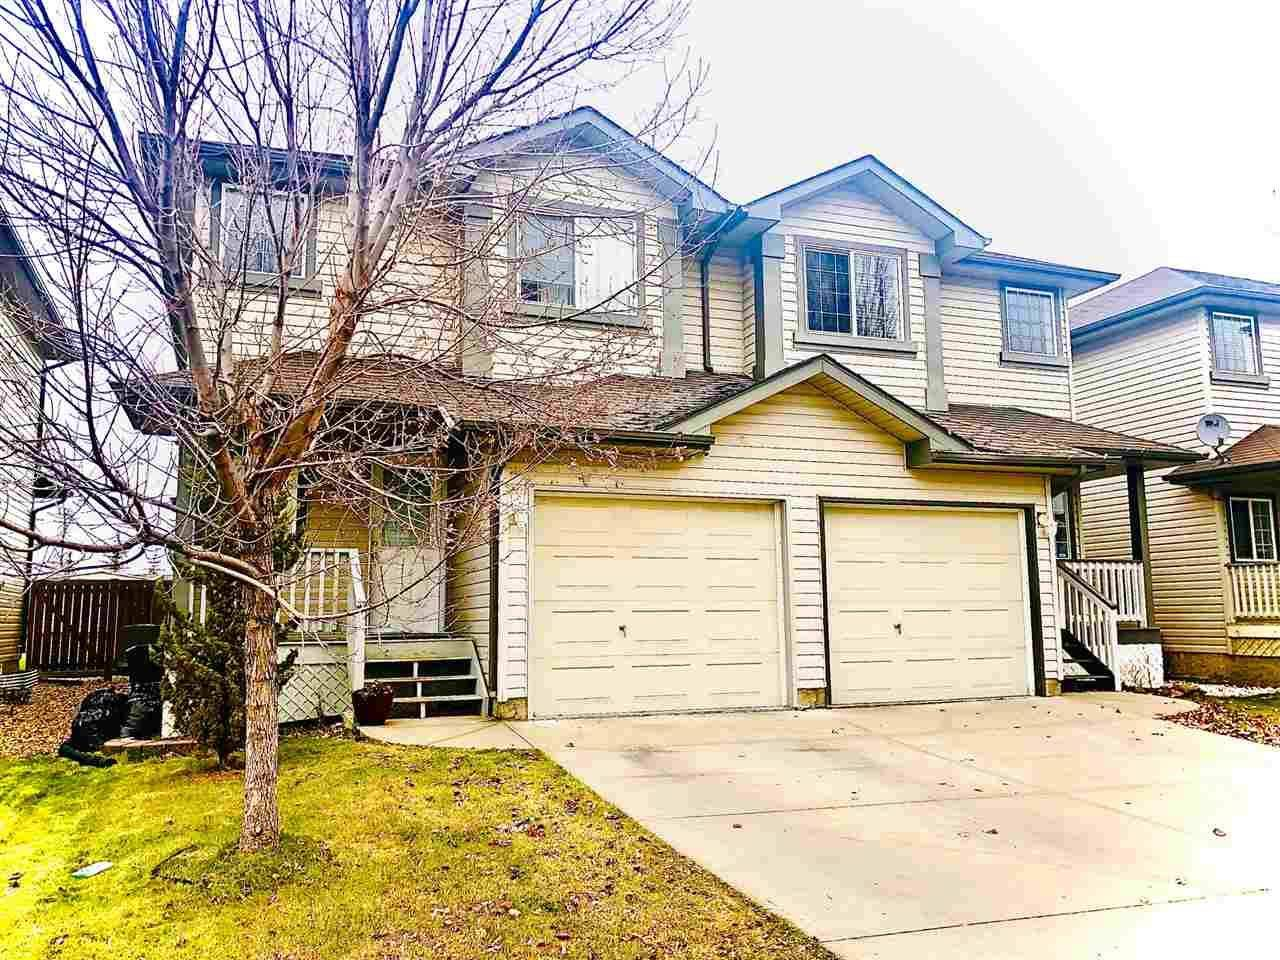 Townhouse for sale at 7948 2 Ave Sw Edmonton Alberta - MLS: E4178305